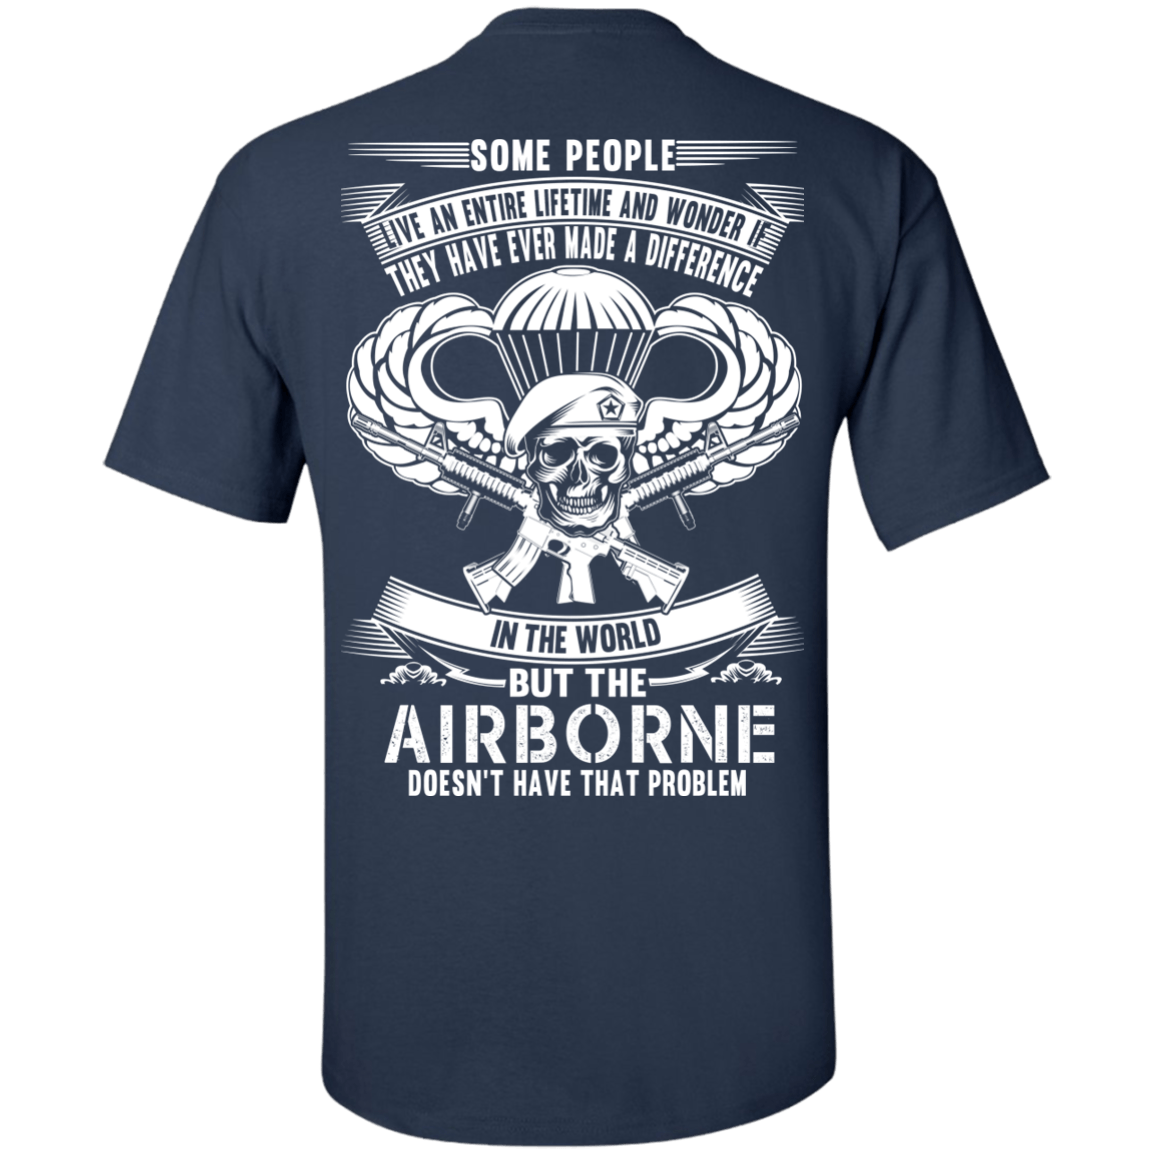 Airborne t shirt: Some people live an entire lifetime